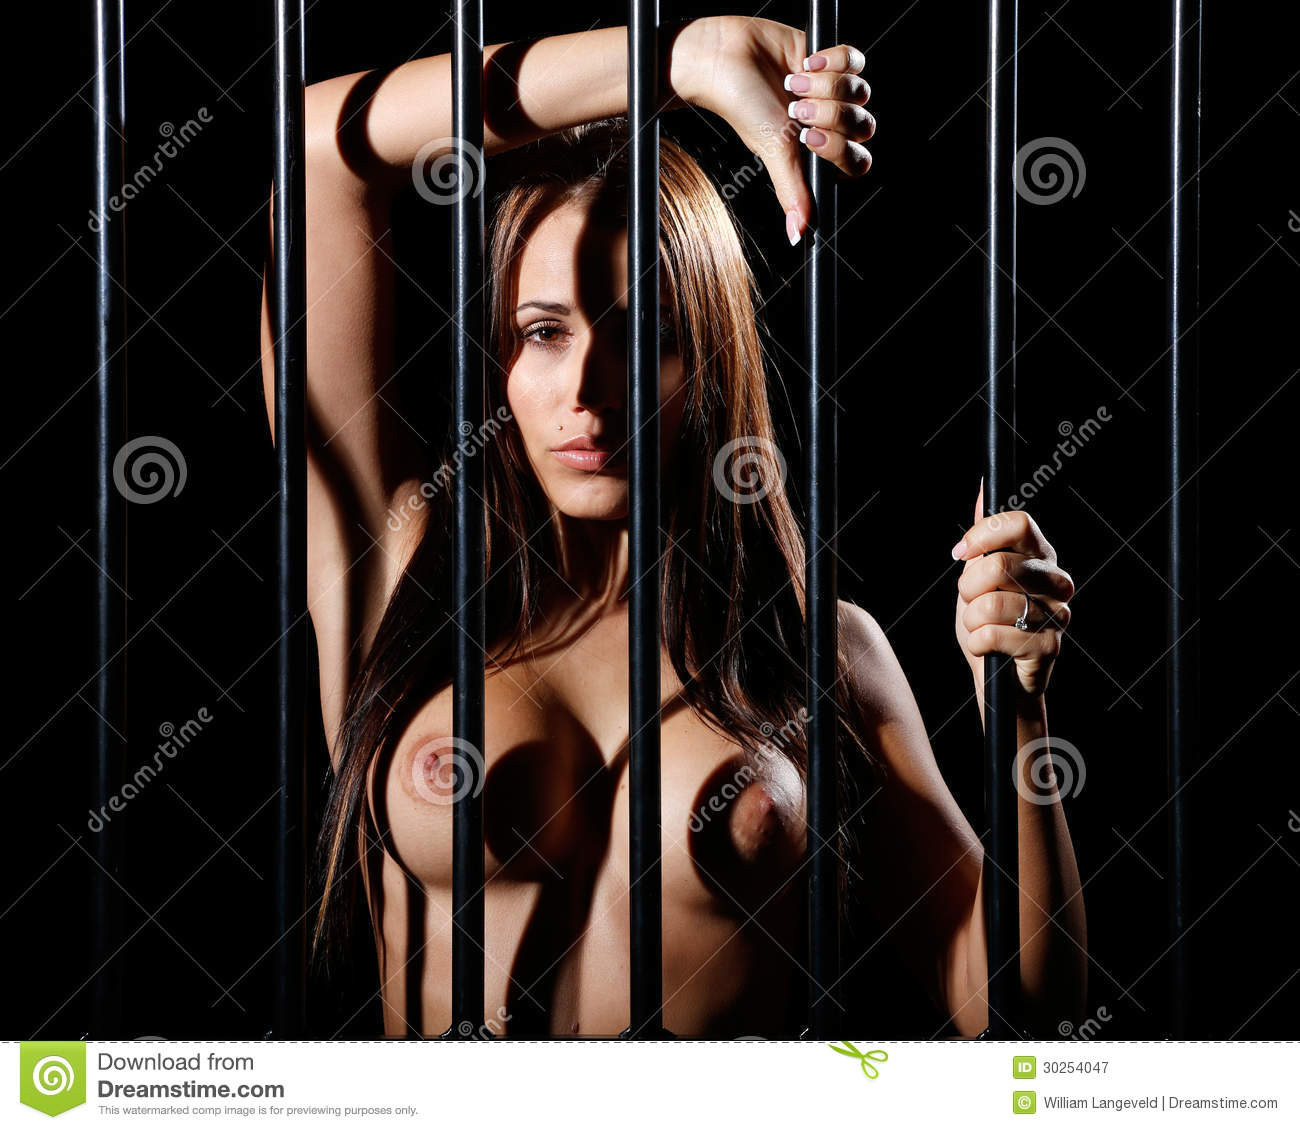 Very Sey And Beautiful Nude Or Naked Woman Locked Behind Black Prison